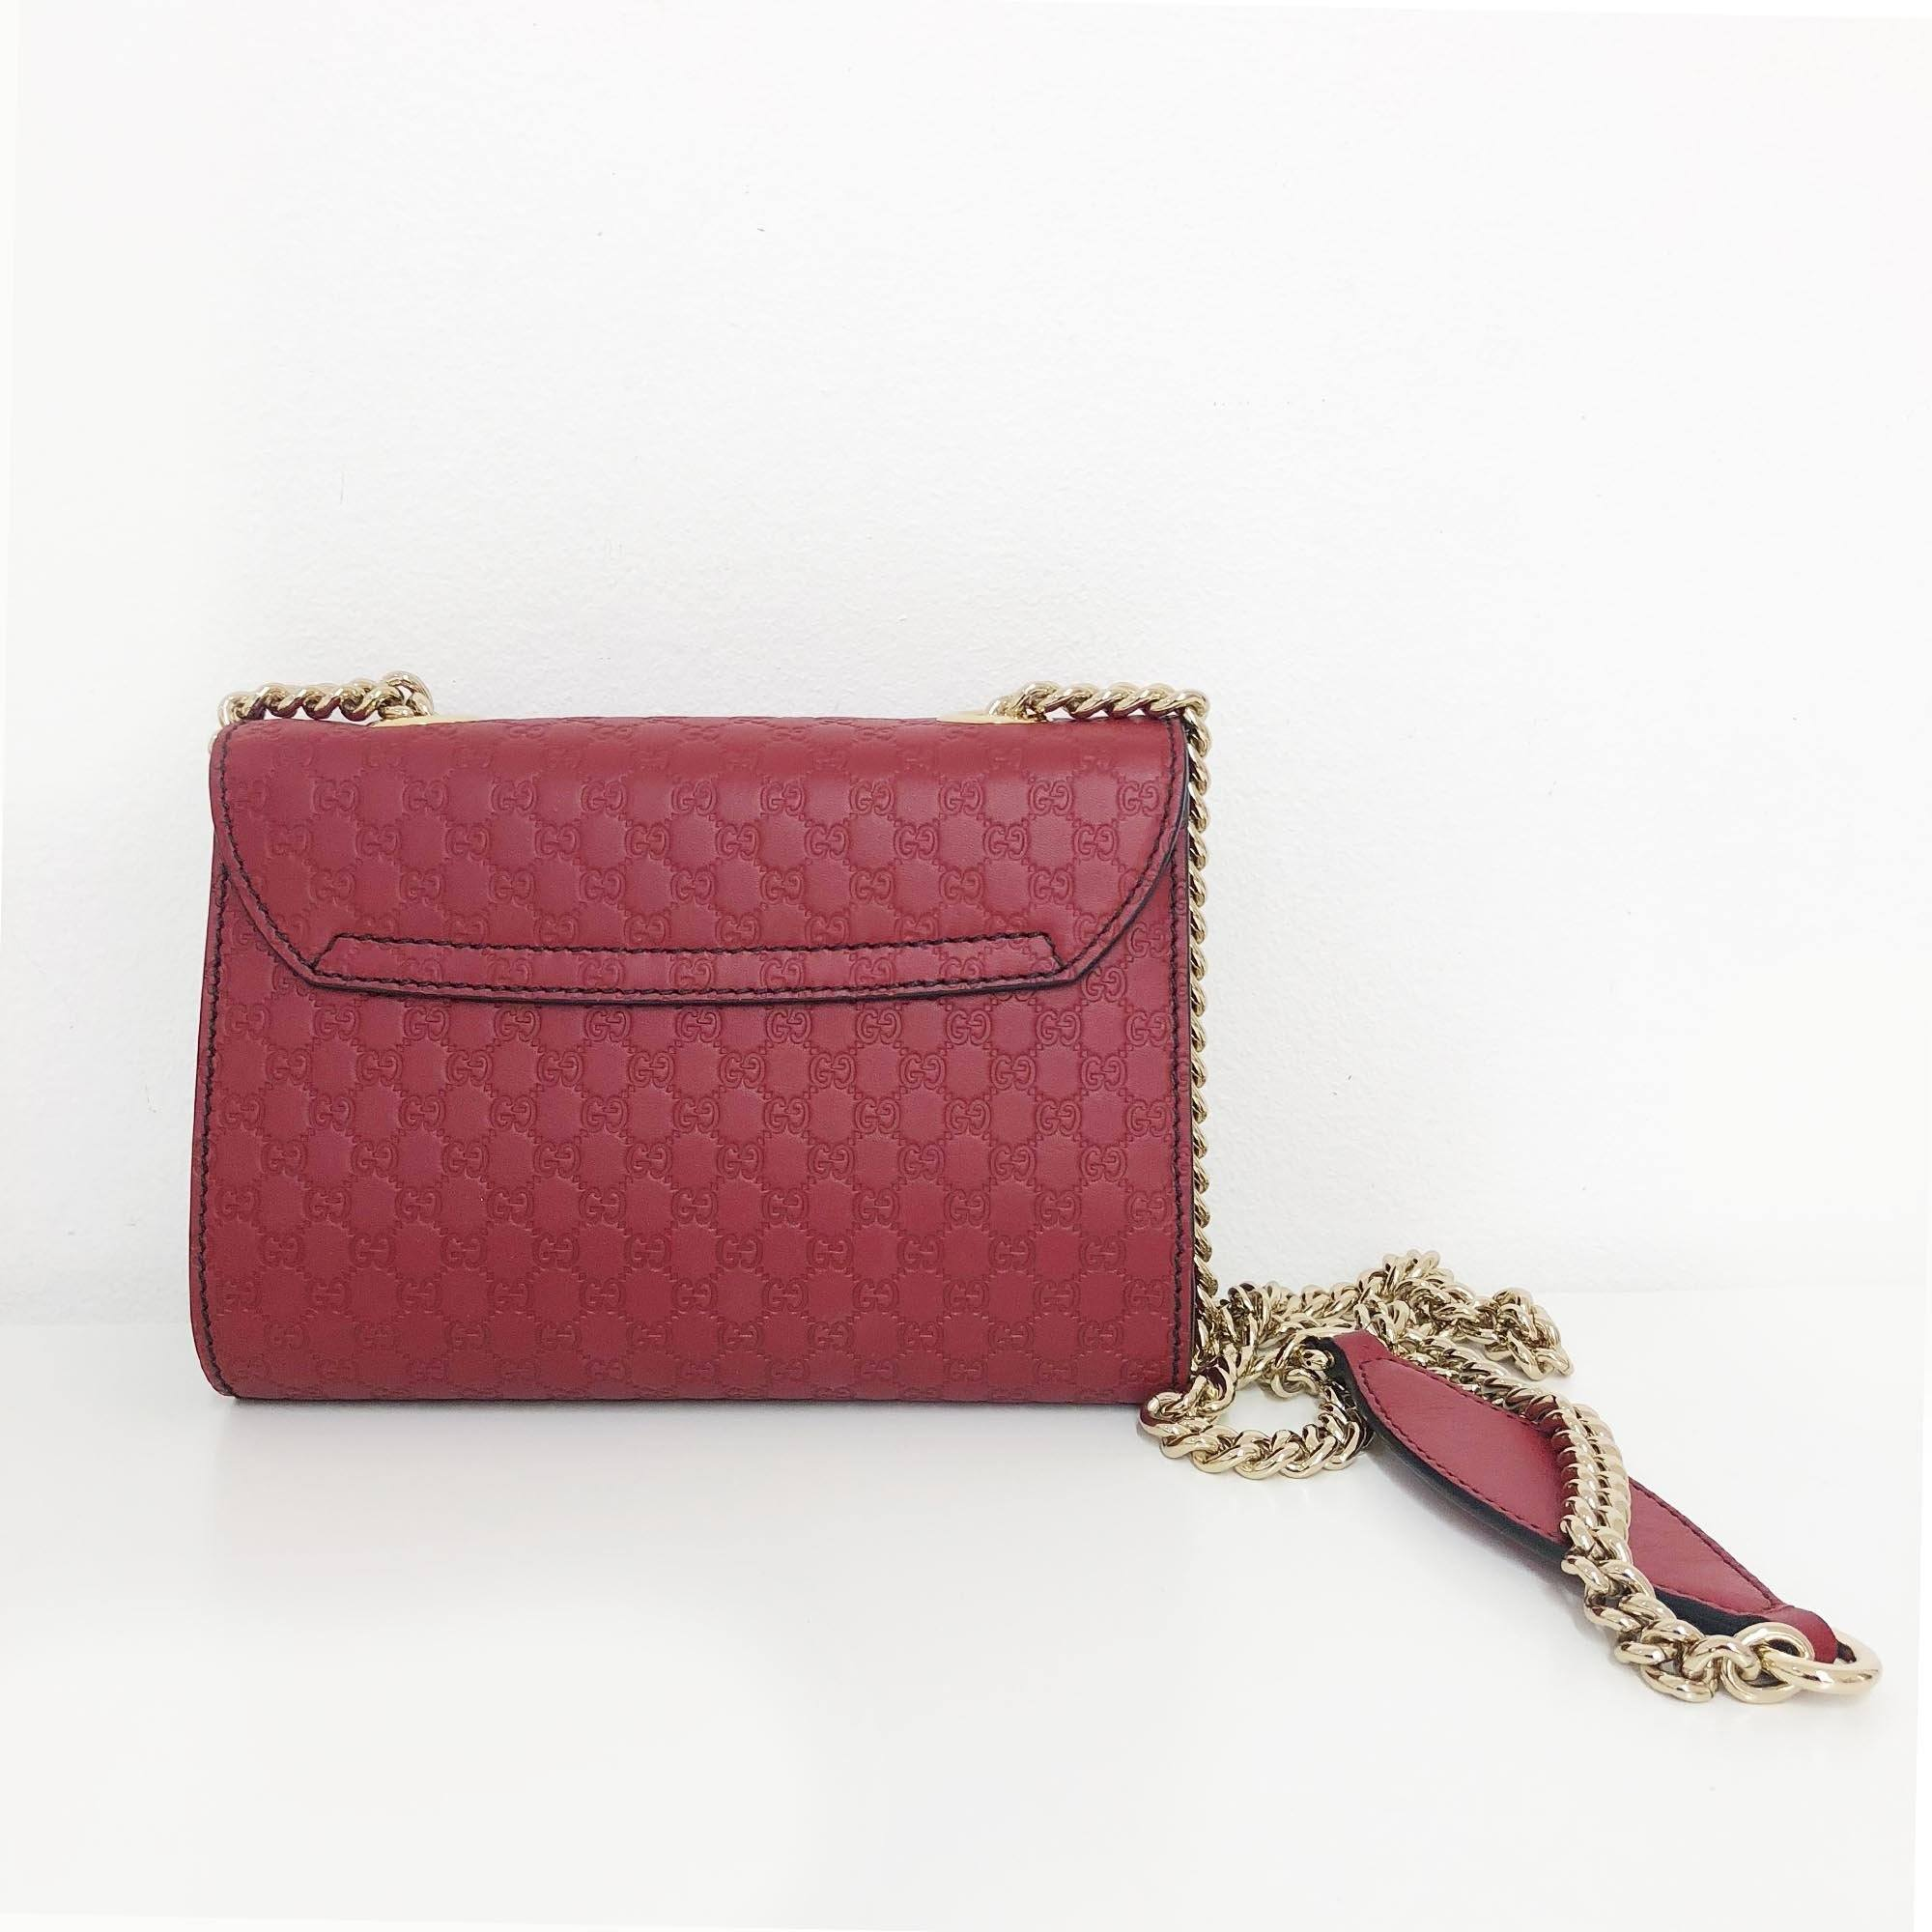 Gucci Emily Mini Guccissima Leather Chain Shoulder Bag